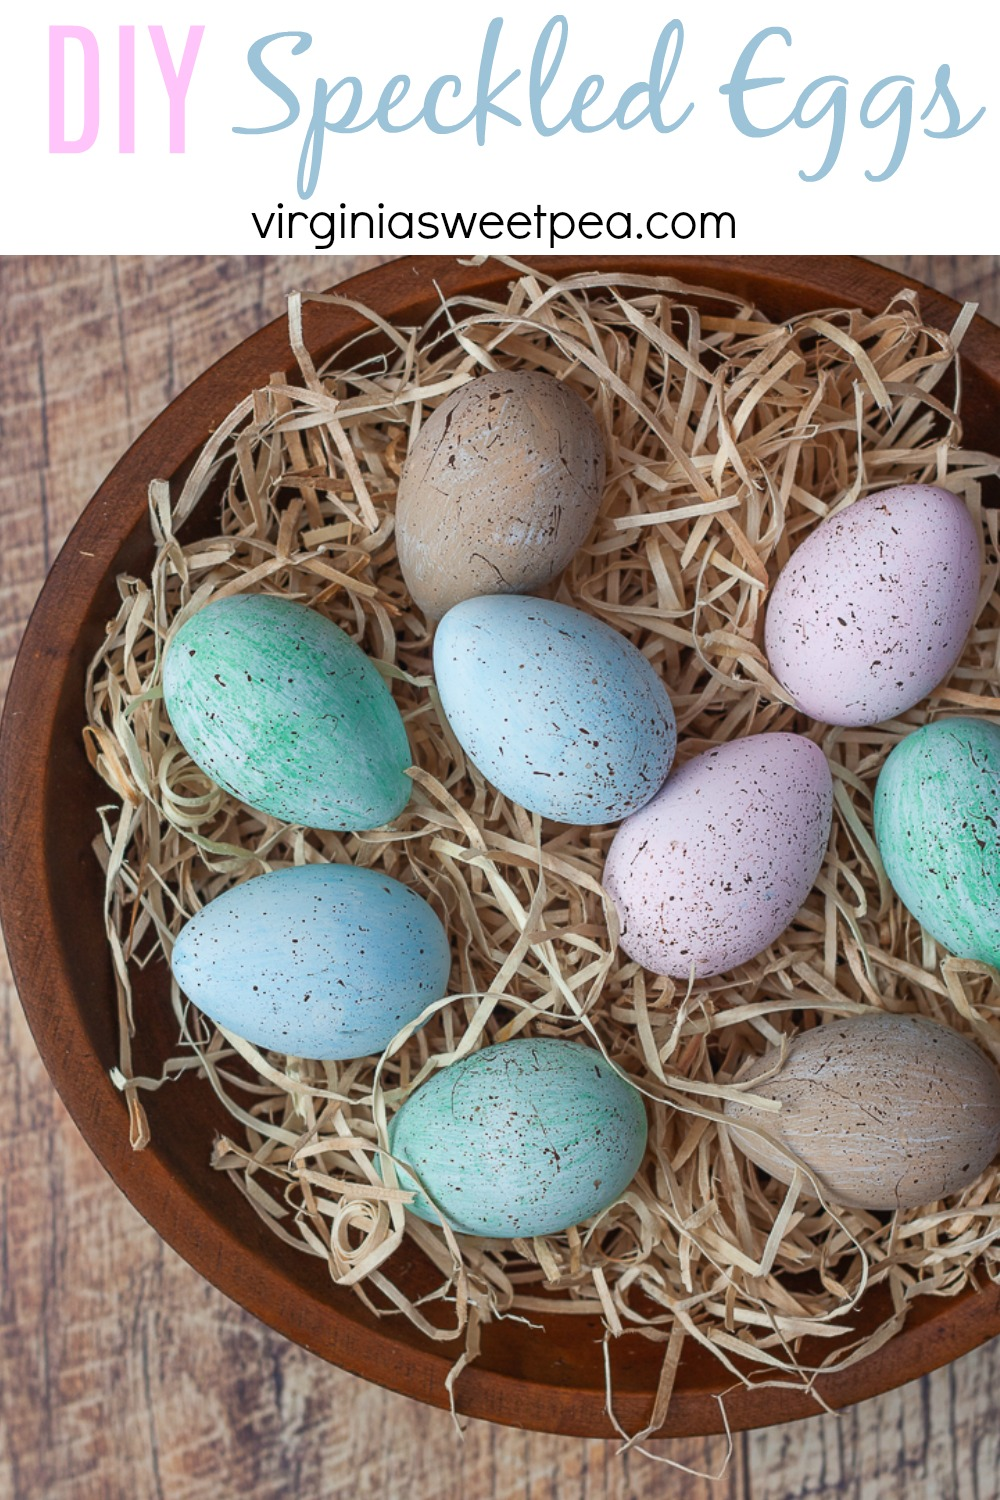 DIY Speckled Eggs - Learn how to make speckled eggs to use for spring and Easter decor.  Customize the egg color to match your style decor.   via @spaula